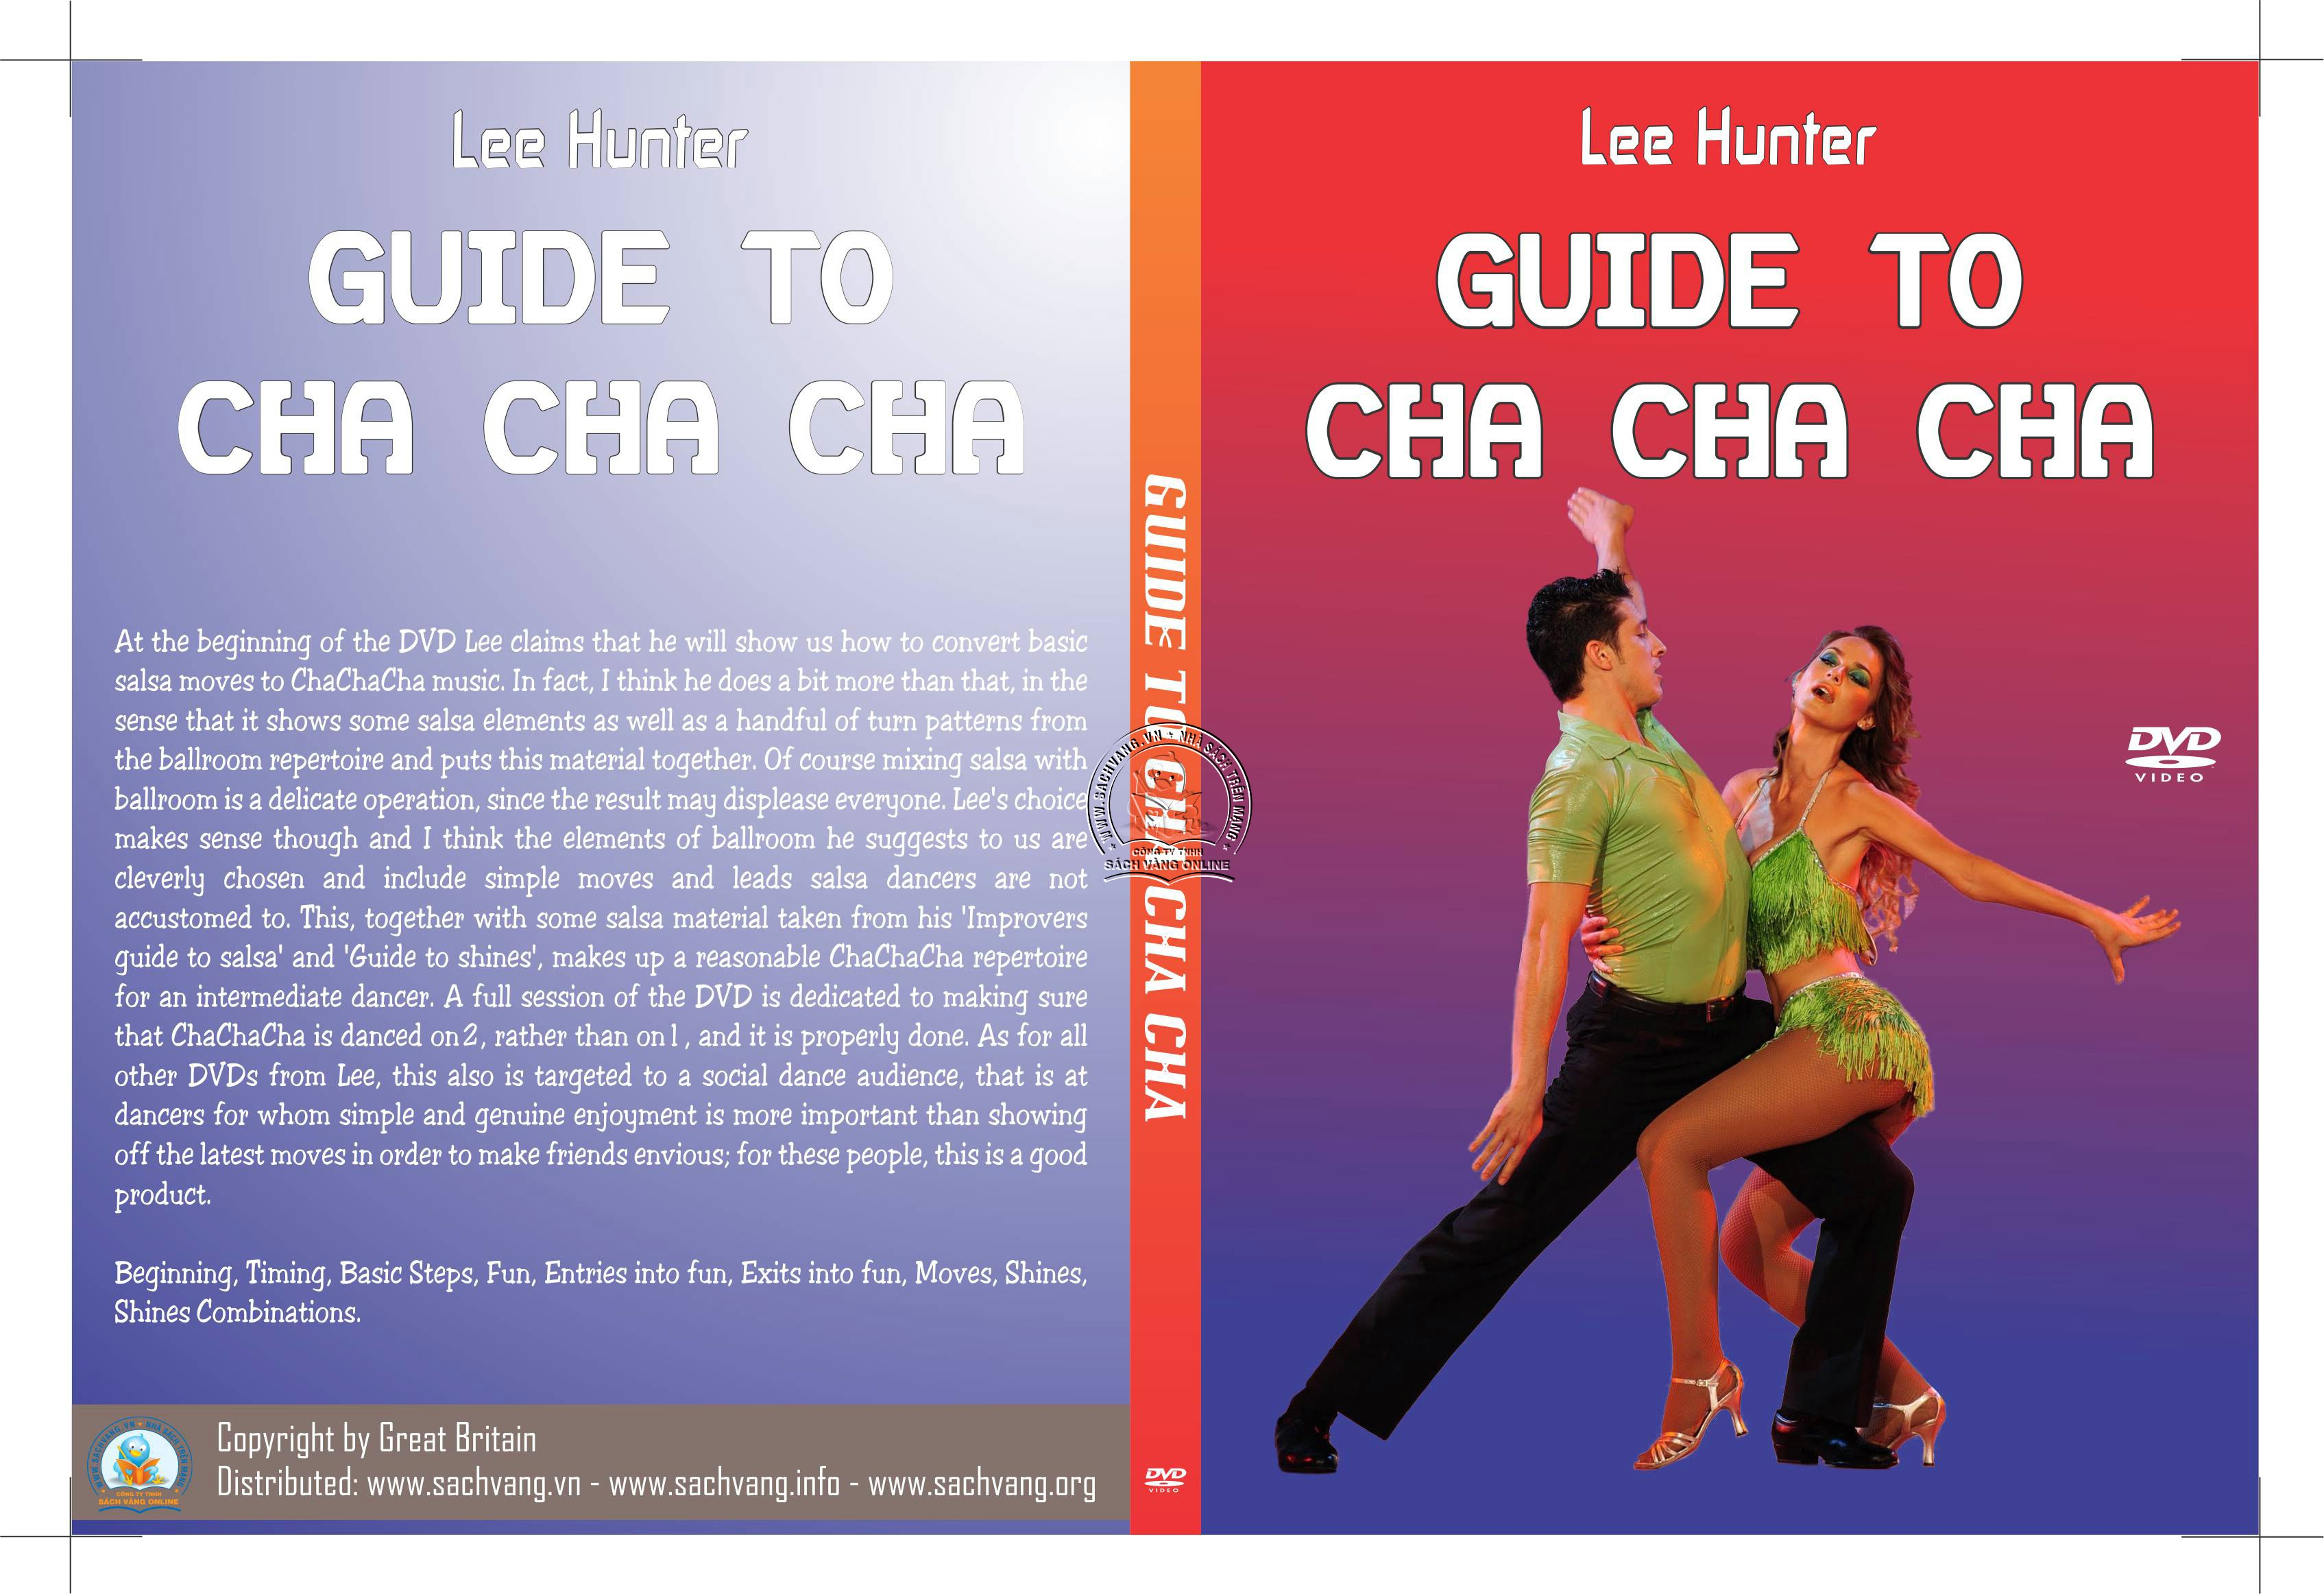 Lee Hunter's Guide To Cha Cha Cha cover